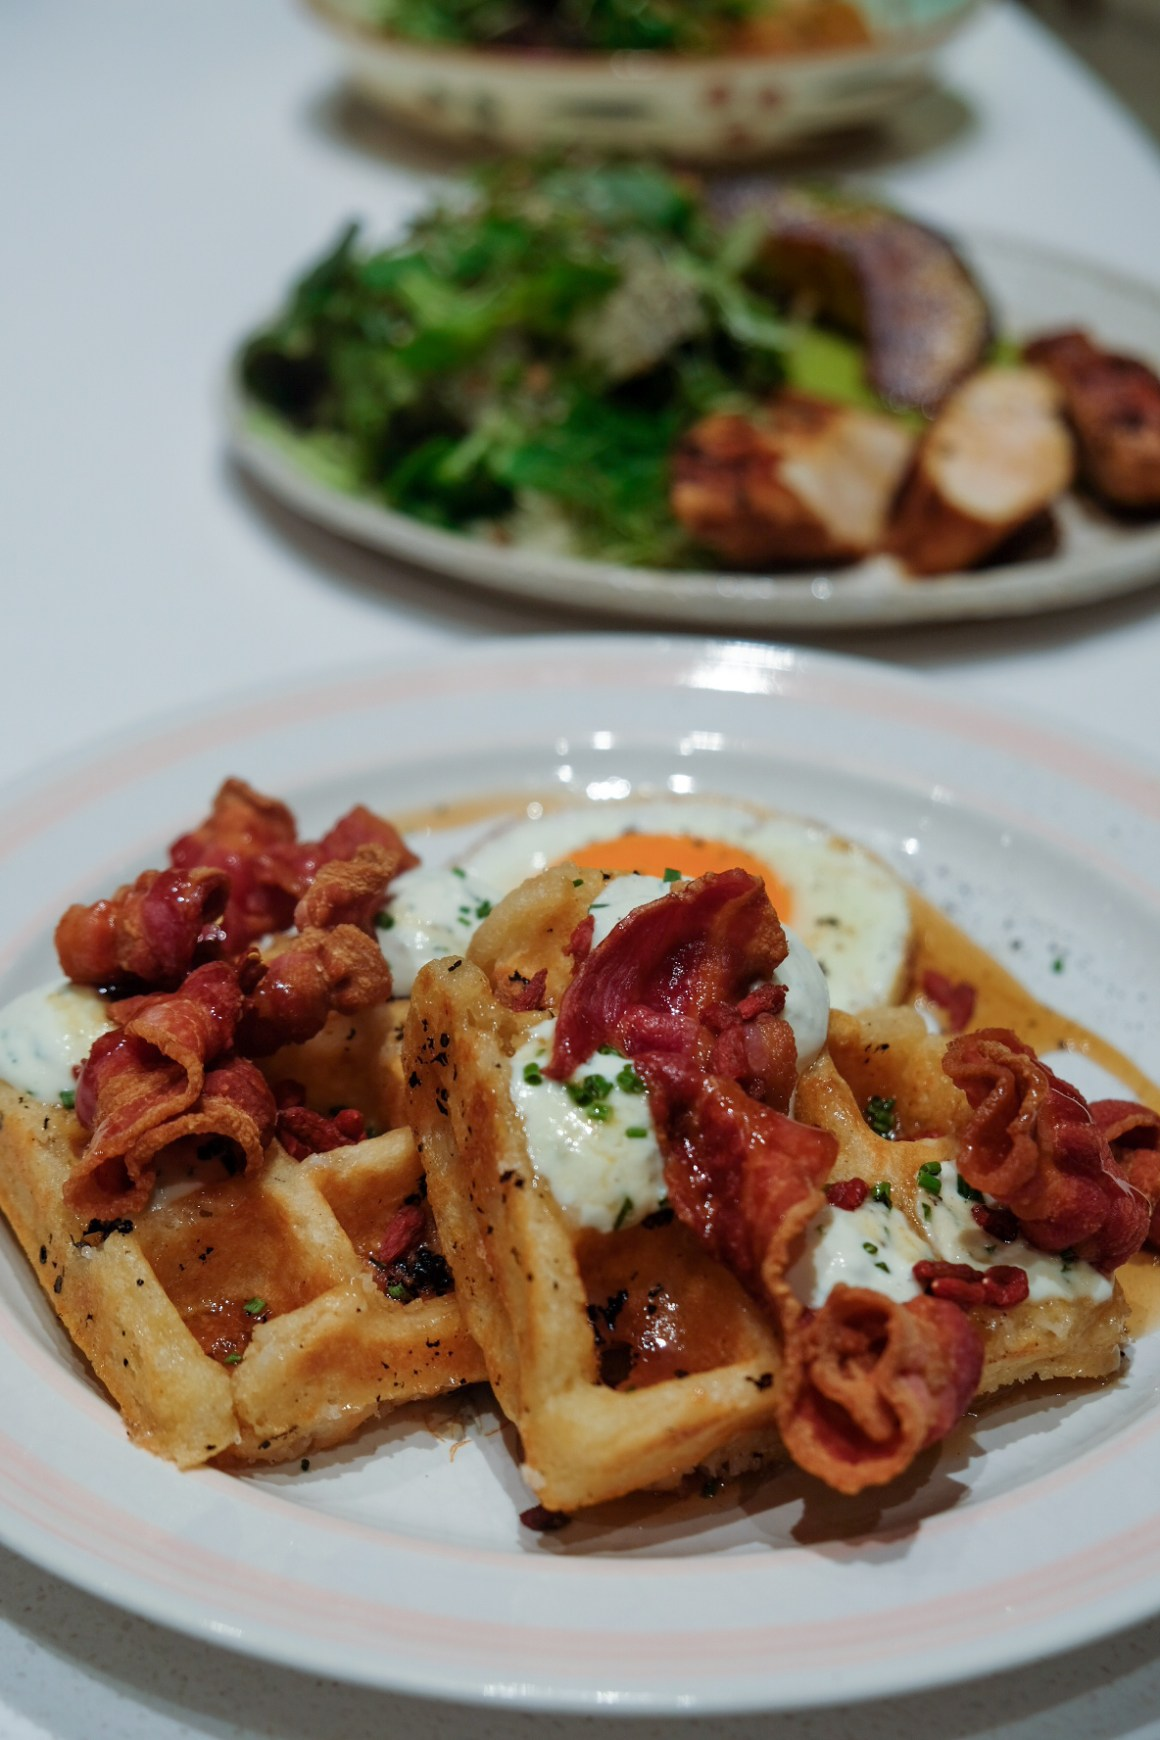 Tiong Bahru Bakery Diner New Menu By Chef Paul Albert - 100% Sourdough Waffle, Savoury ($23)